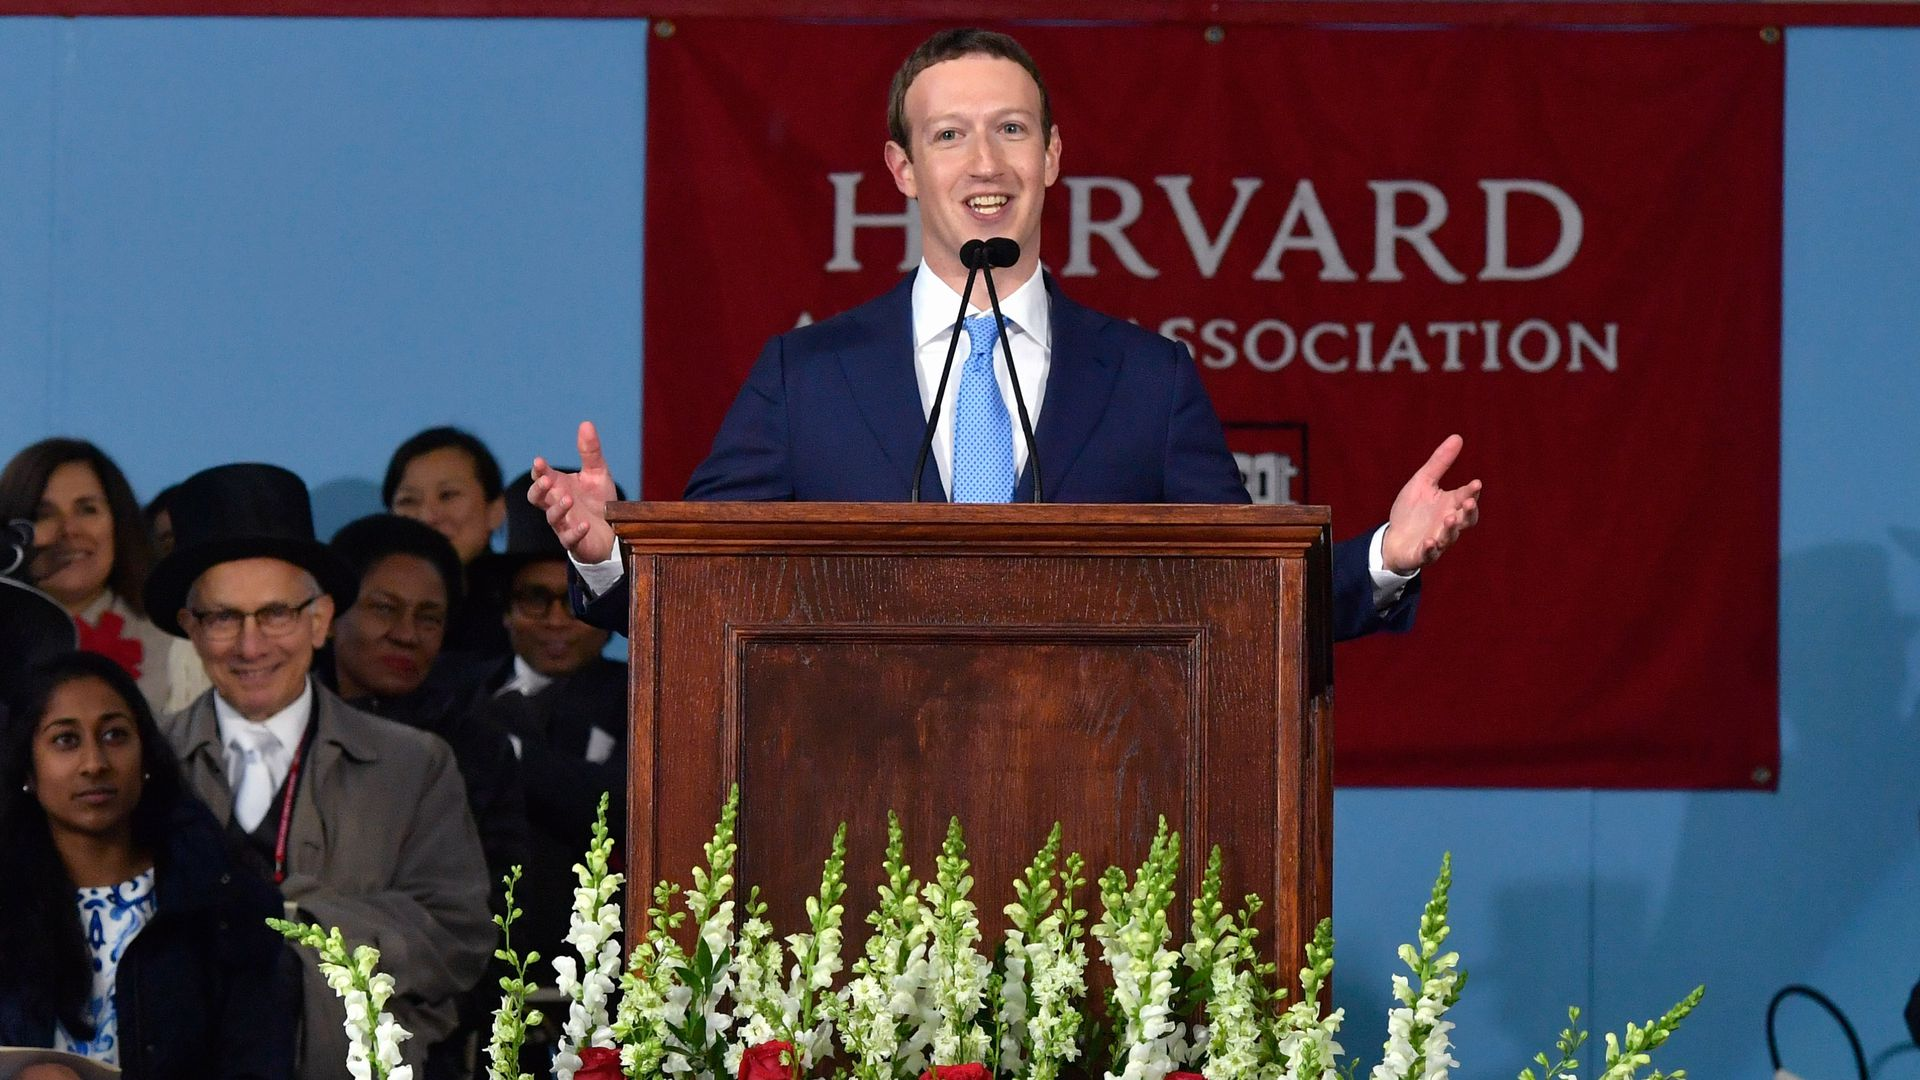 Mark Zuckerberg gives a speech at Harvard